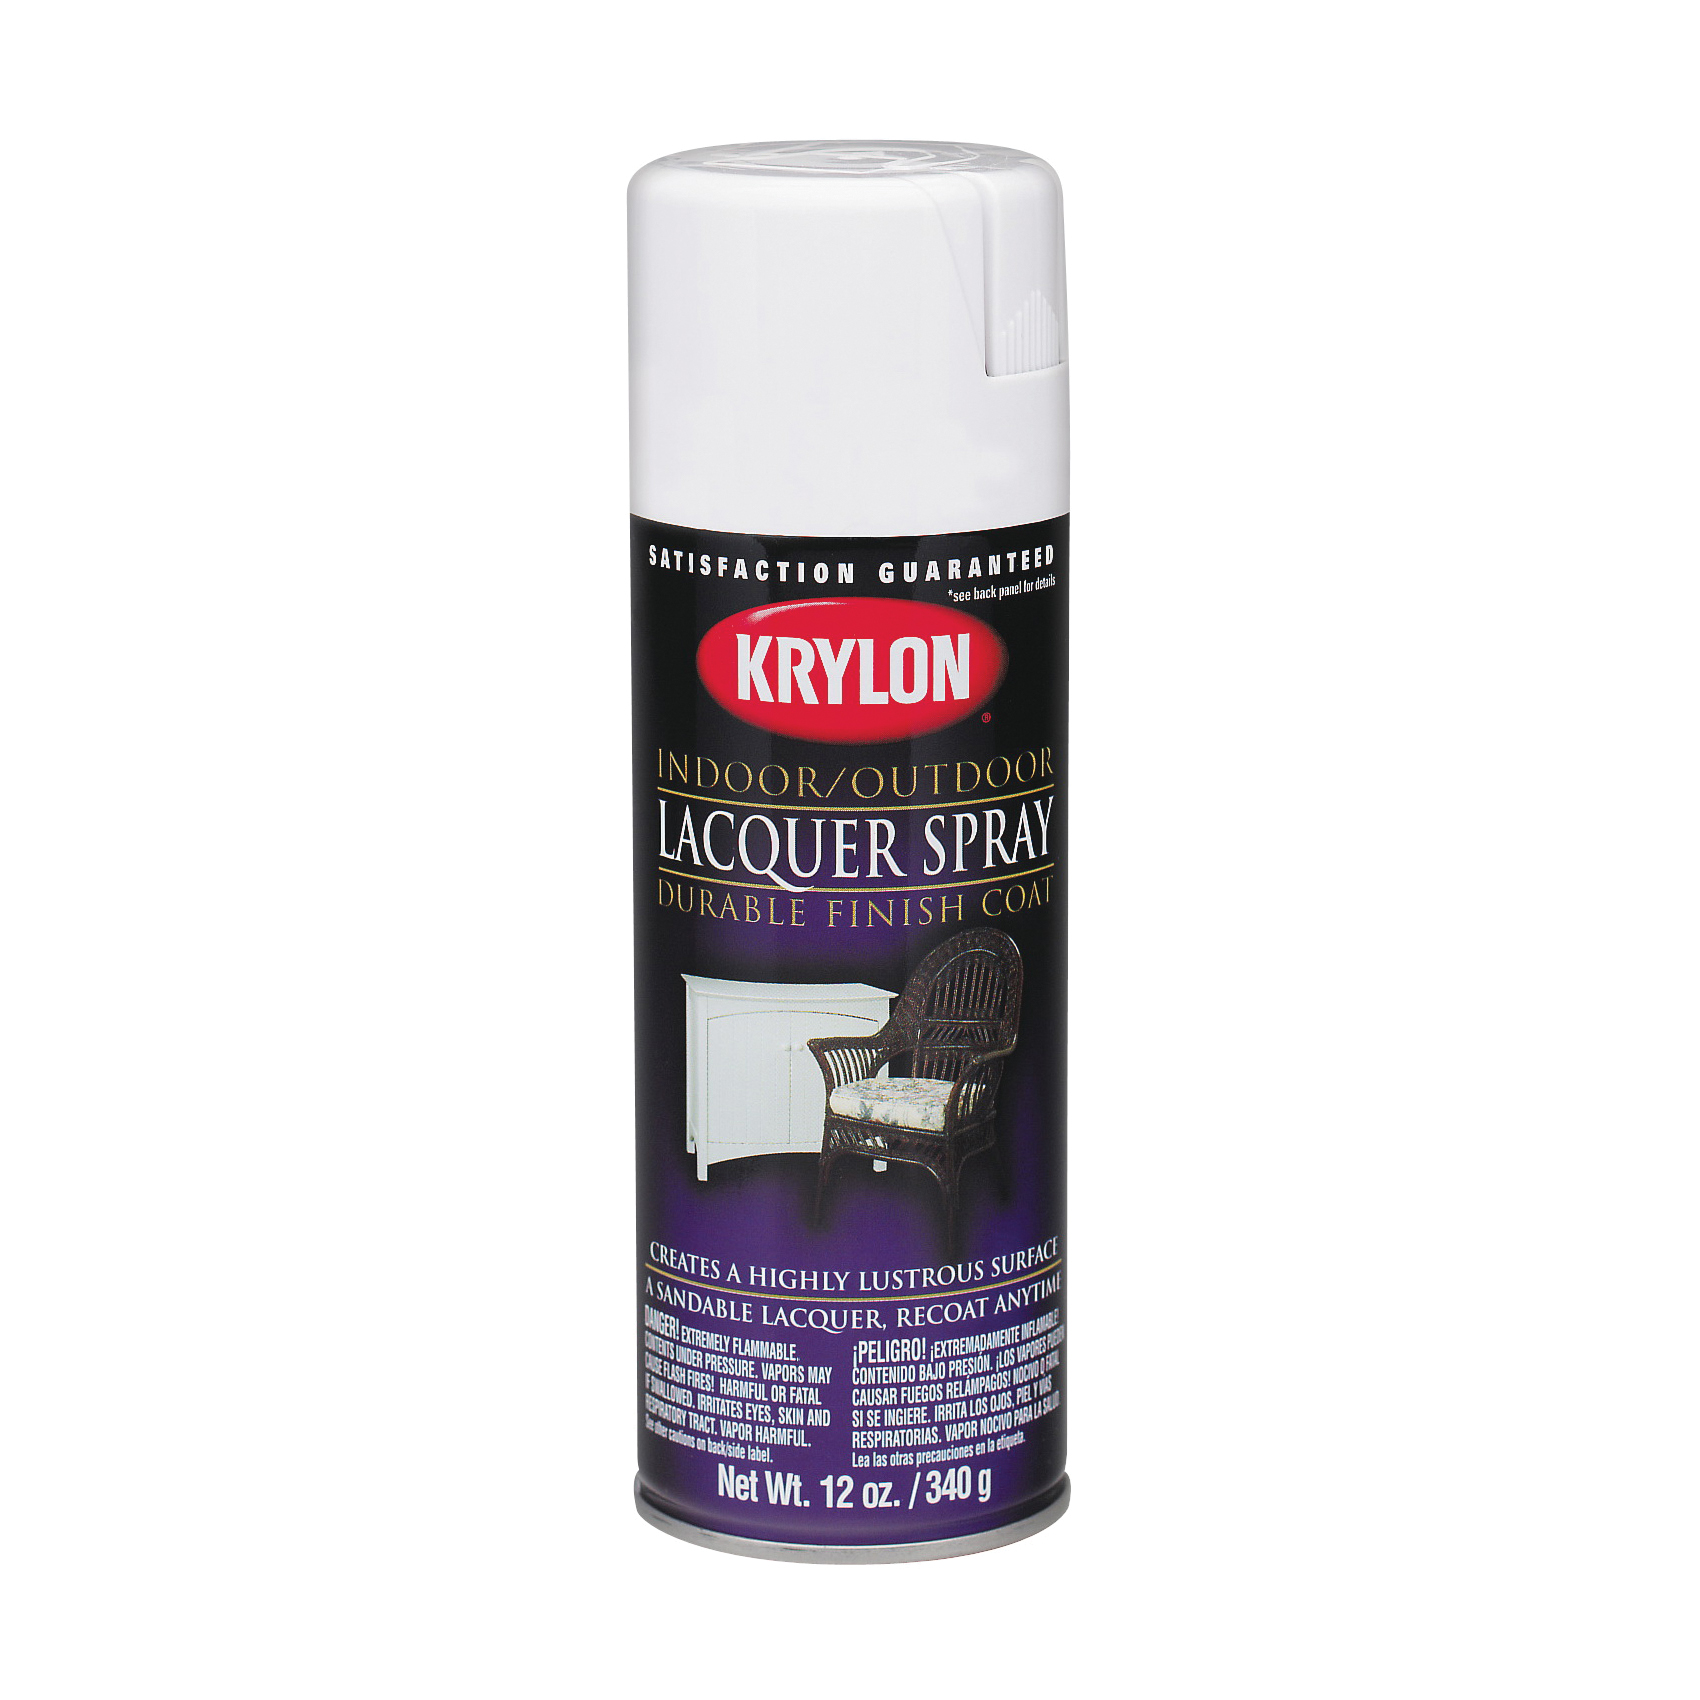 Picture of Krylon K07031007 Lacquer Spray Paint, Gloss, Liquid, White, 12 oz, Aerosol Can